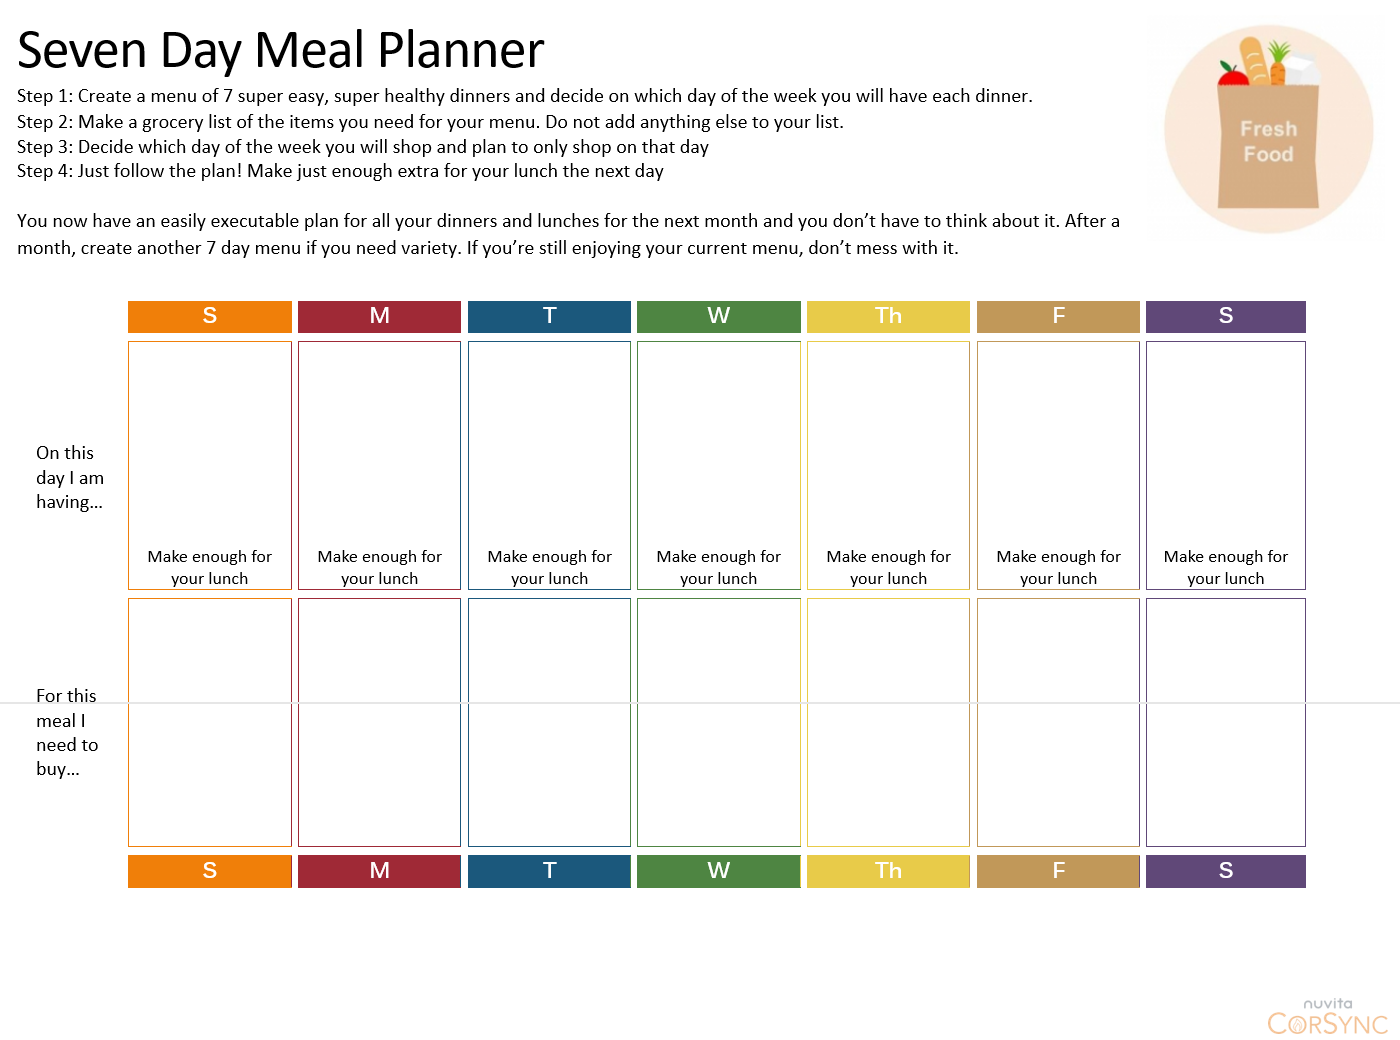 7 Day Meal Planner.png